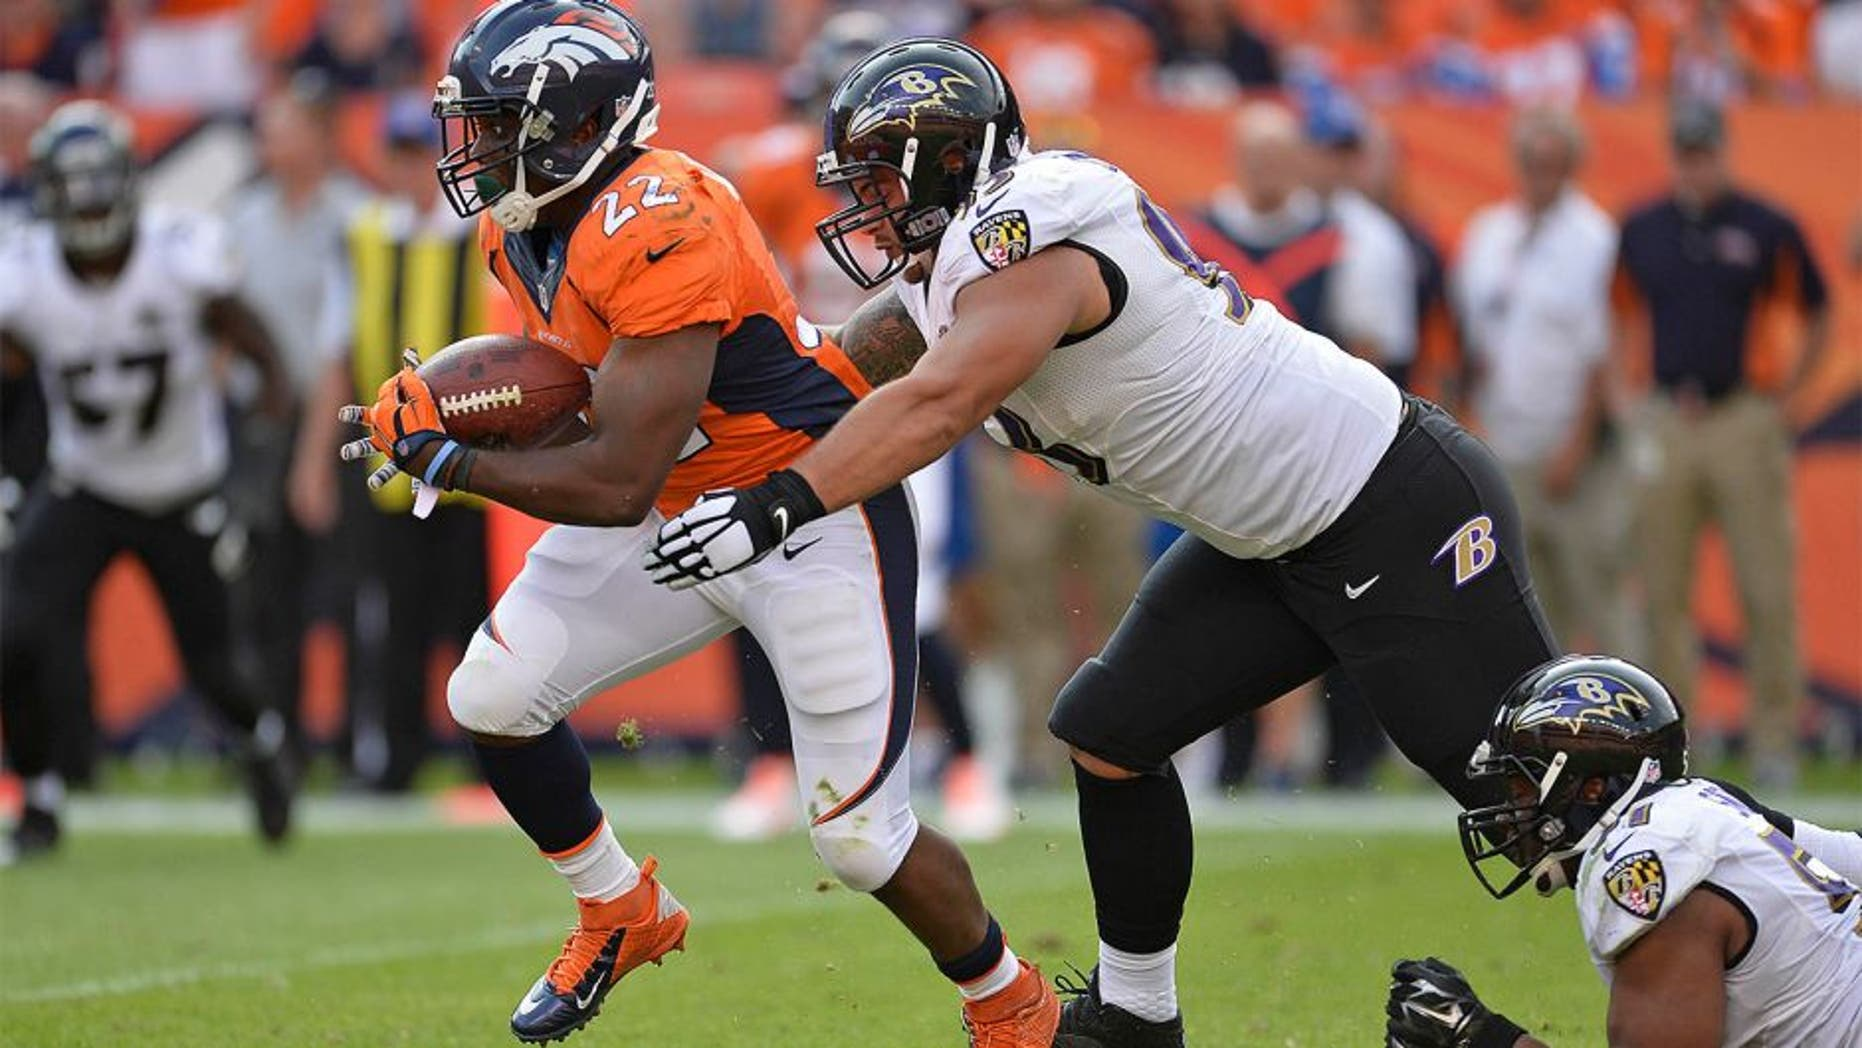 zSep 13, 2015; Denver, CO, USA; Denver Broncos running back C.J. Anderson (22) carries the ball as Baltimore Ravens defensive end Lawrence Guy (93) defends in the fourth quarter at Sports Authority Field at Mile High. The Broncos defeated the Ravens 19-13. Mandatory Credit: Ron Chenoy-USA TODAY Sports